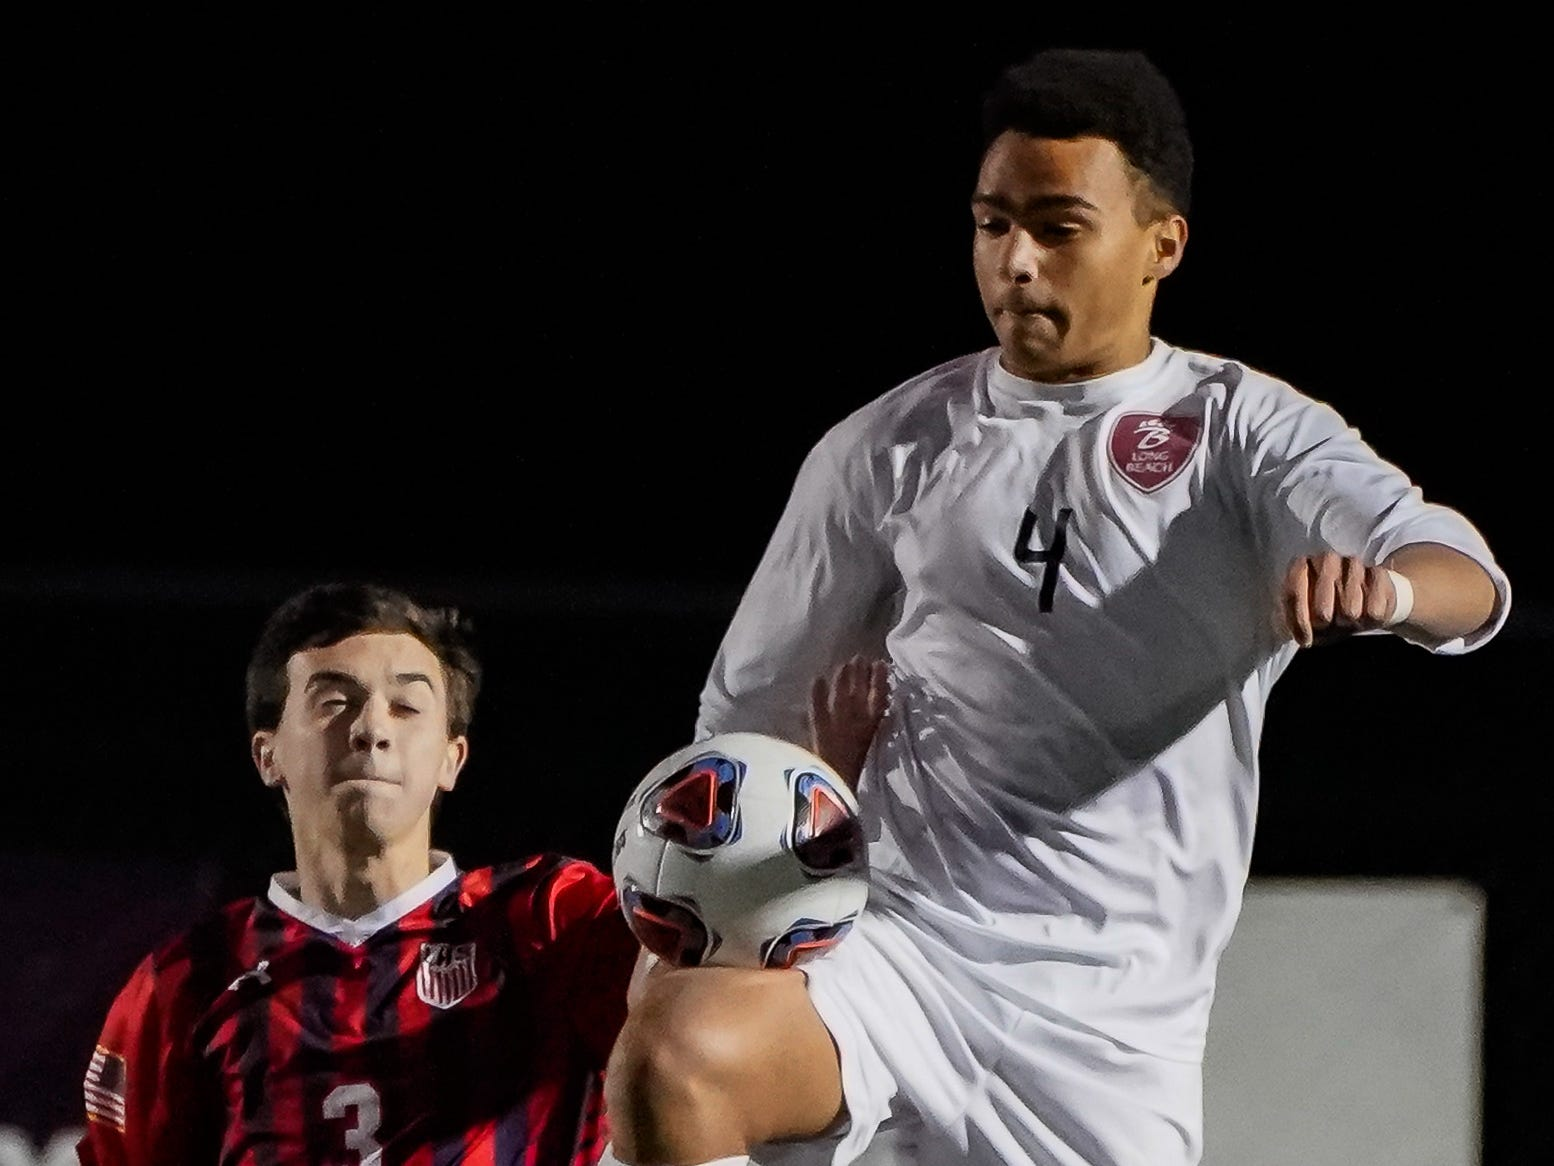 Long Beach's Noah Shockley (4) controls a ball against Lewisburg during the MHSAA 5A Boys Soccer Championships held at Brandon High School in Brandon, MS, Saturday February 9, 2019.(Bob Smith-For The Clarion Ledger)